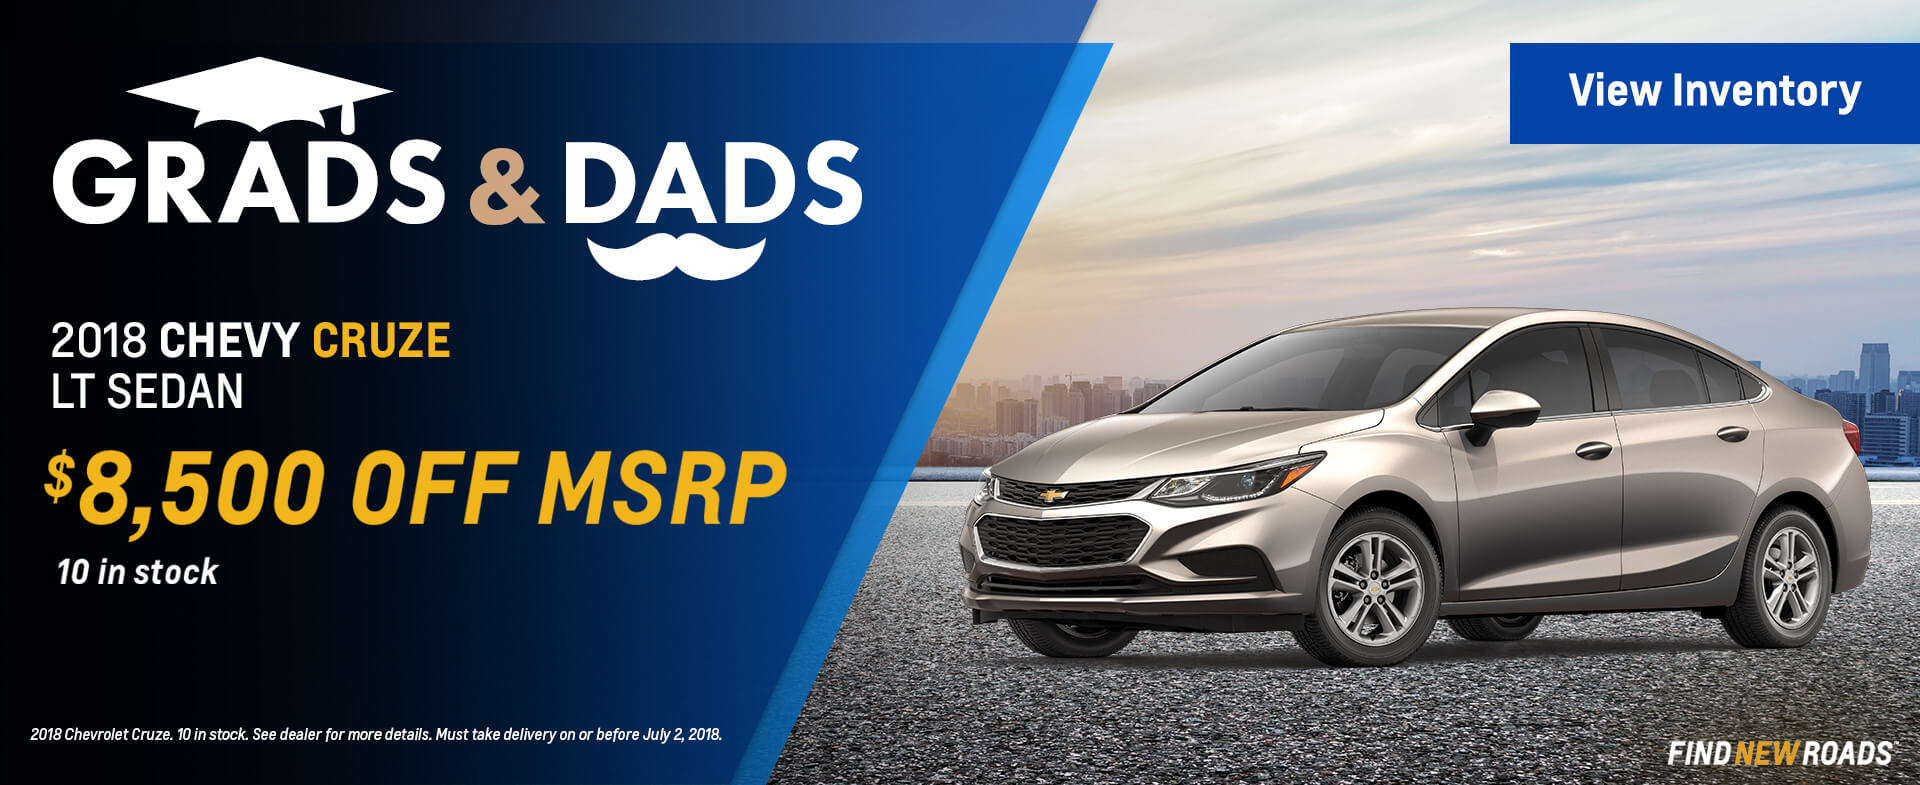 Grads and Dads Cruze